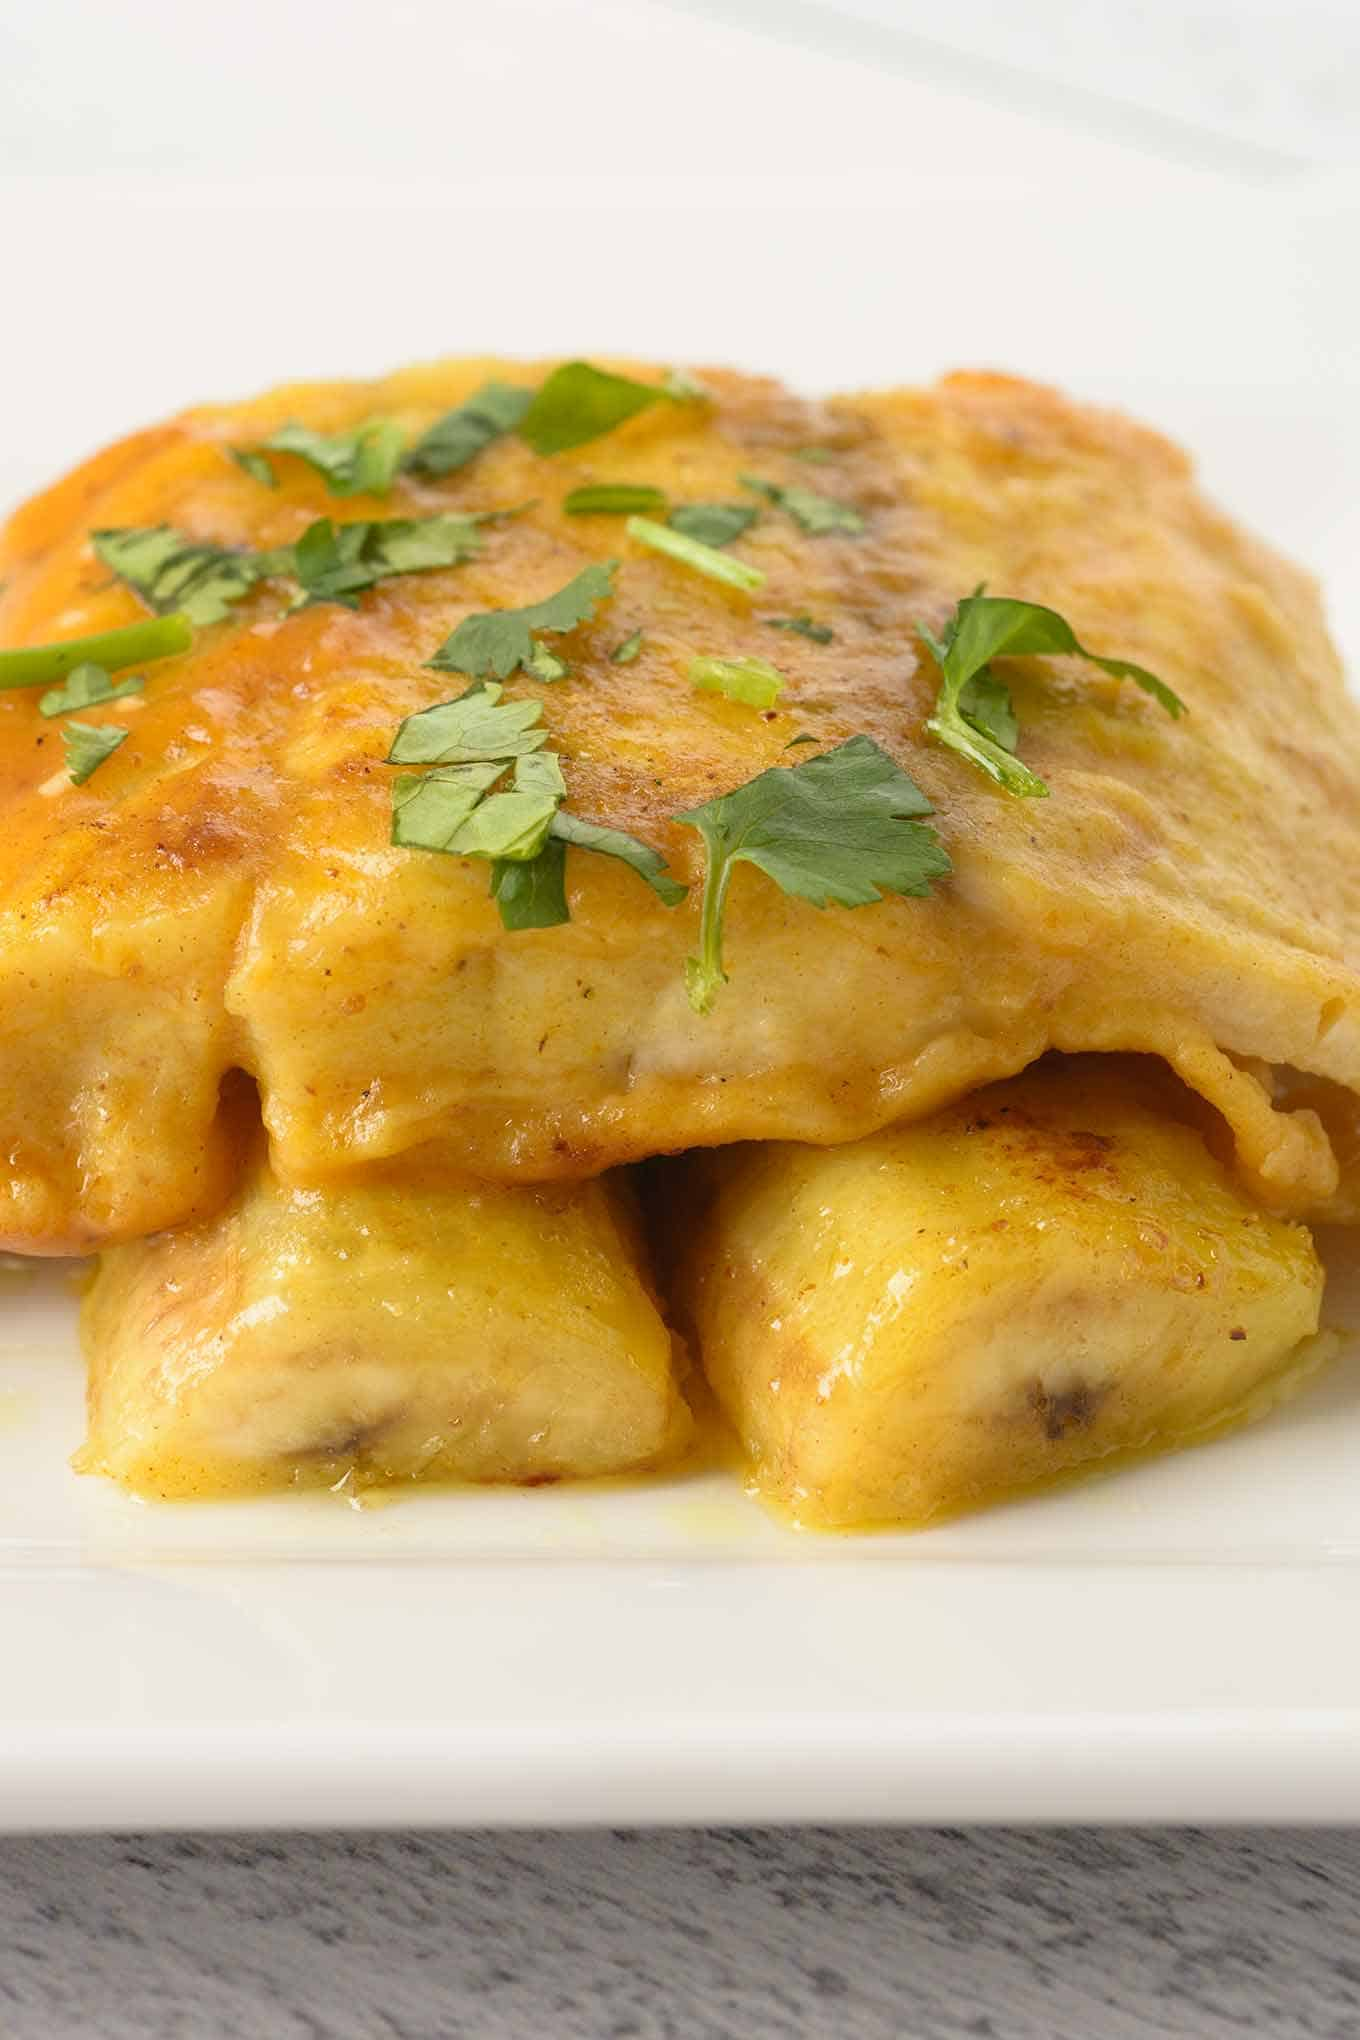 A single serving of a pan-fried fish fillet and sliced bananas coated in a light curry sauce.